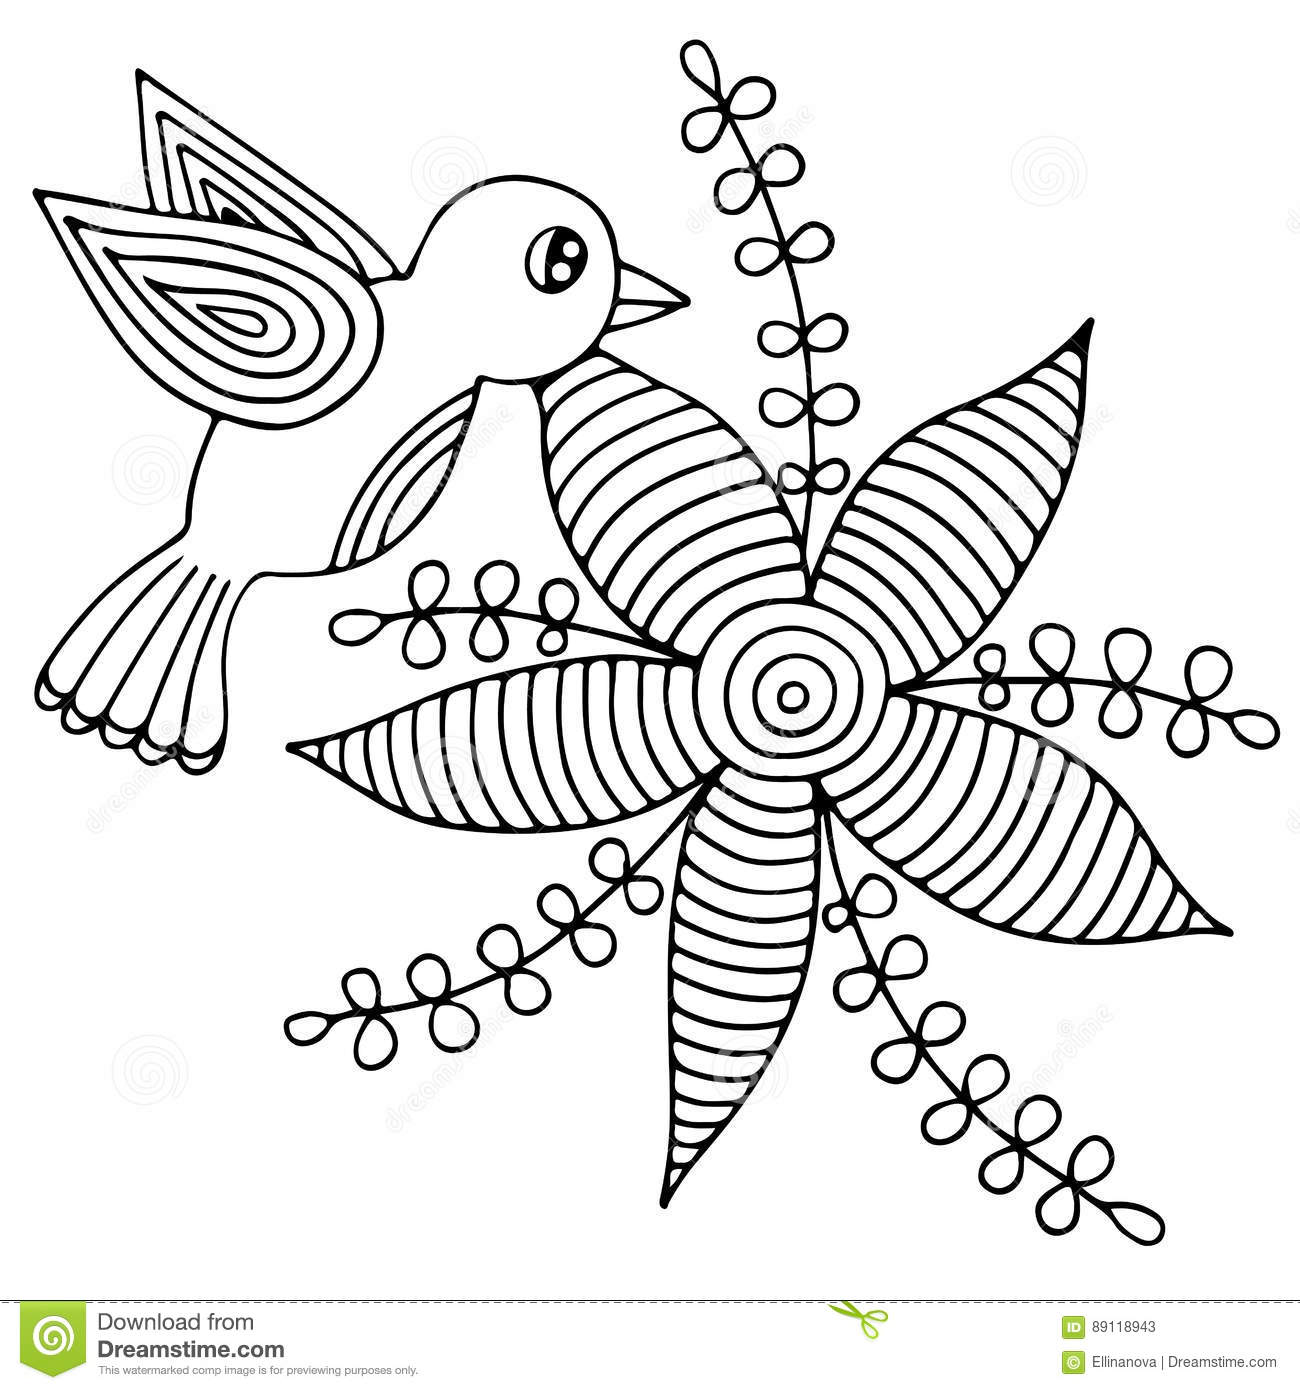 Abstract Bird Coloring Pages : Bird and abstract flower with leaves for adult or child